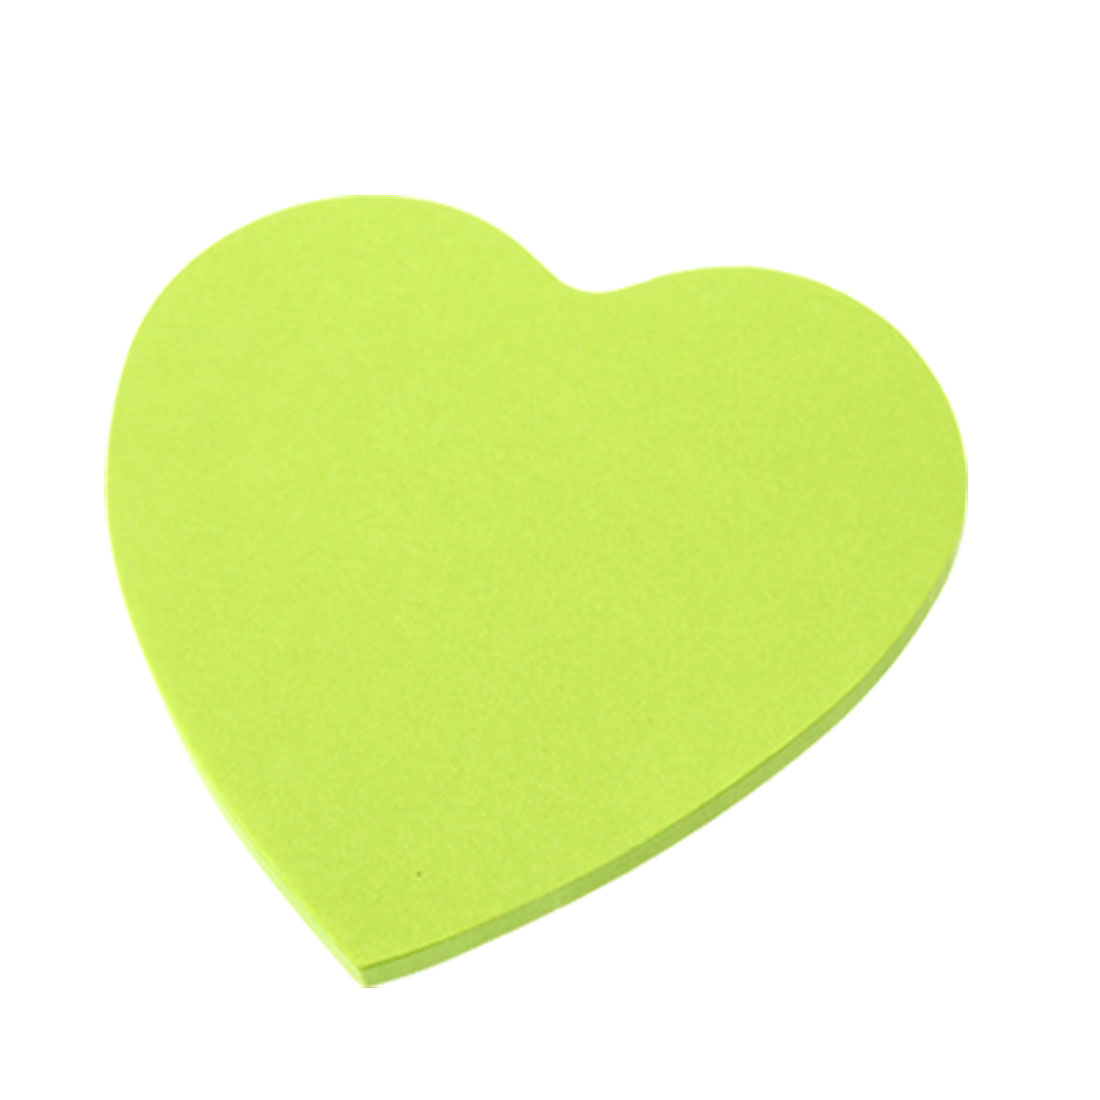 Heart Design Green Self Stick Paper Sticky Memo Notes Pad 2 Pack